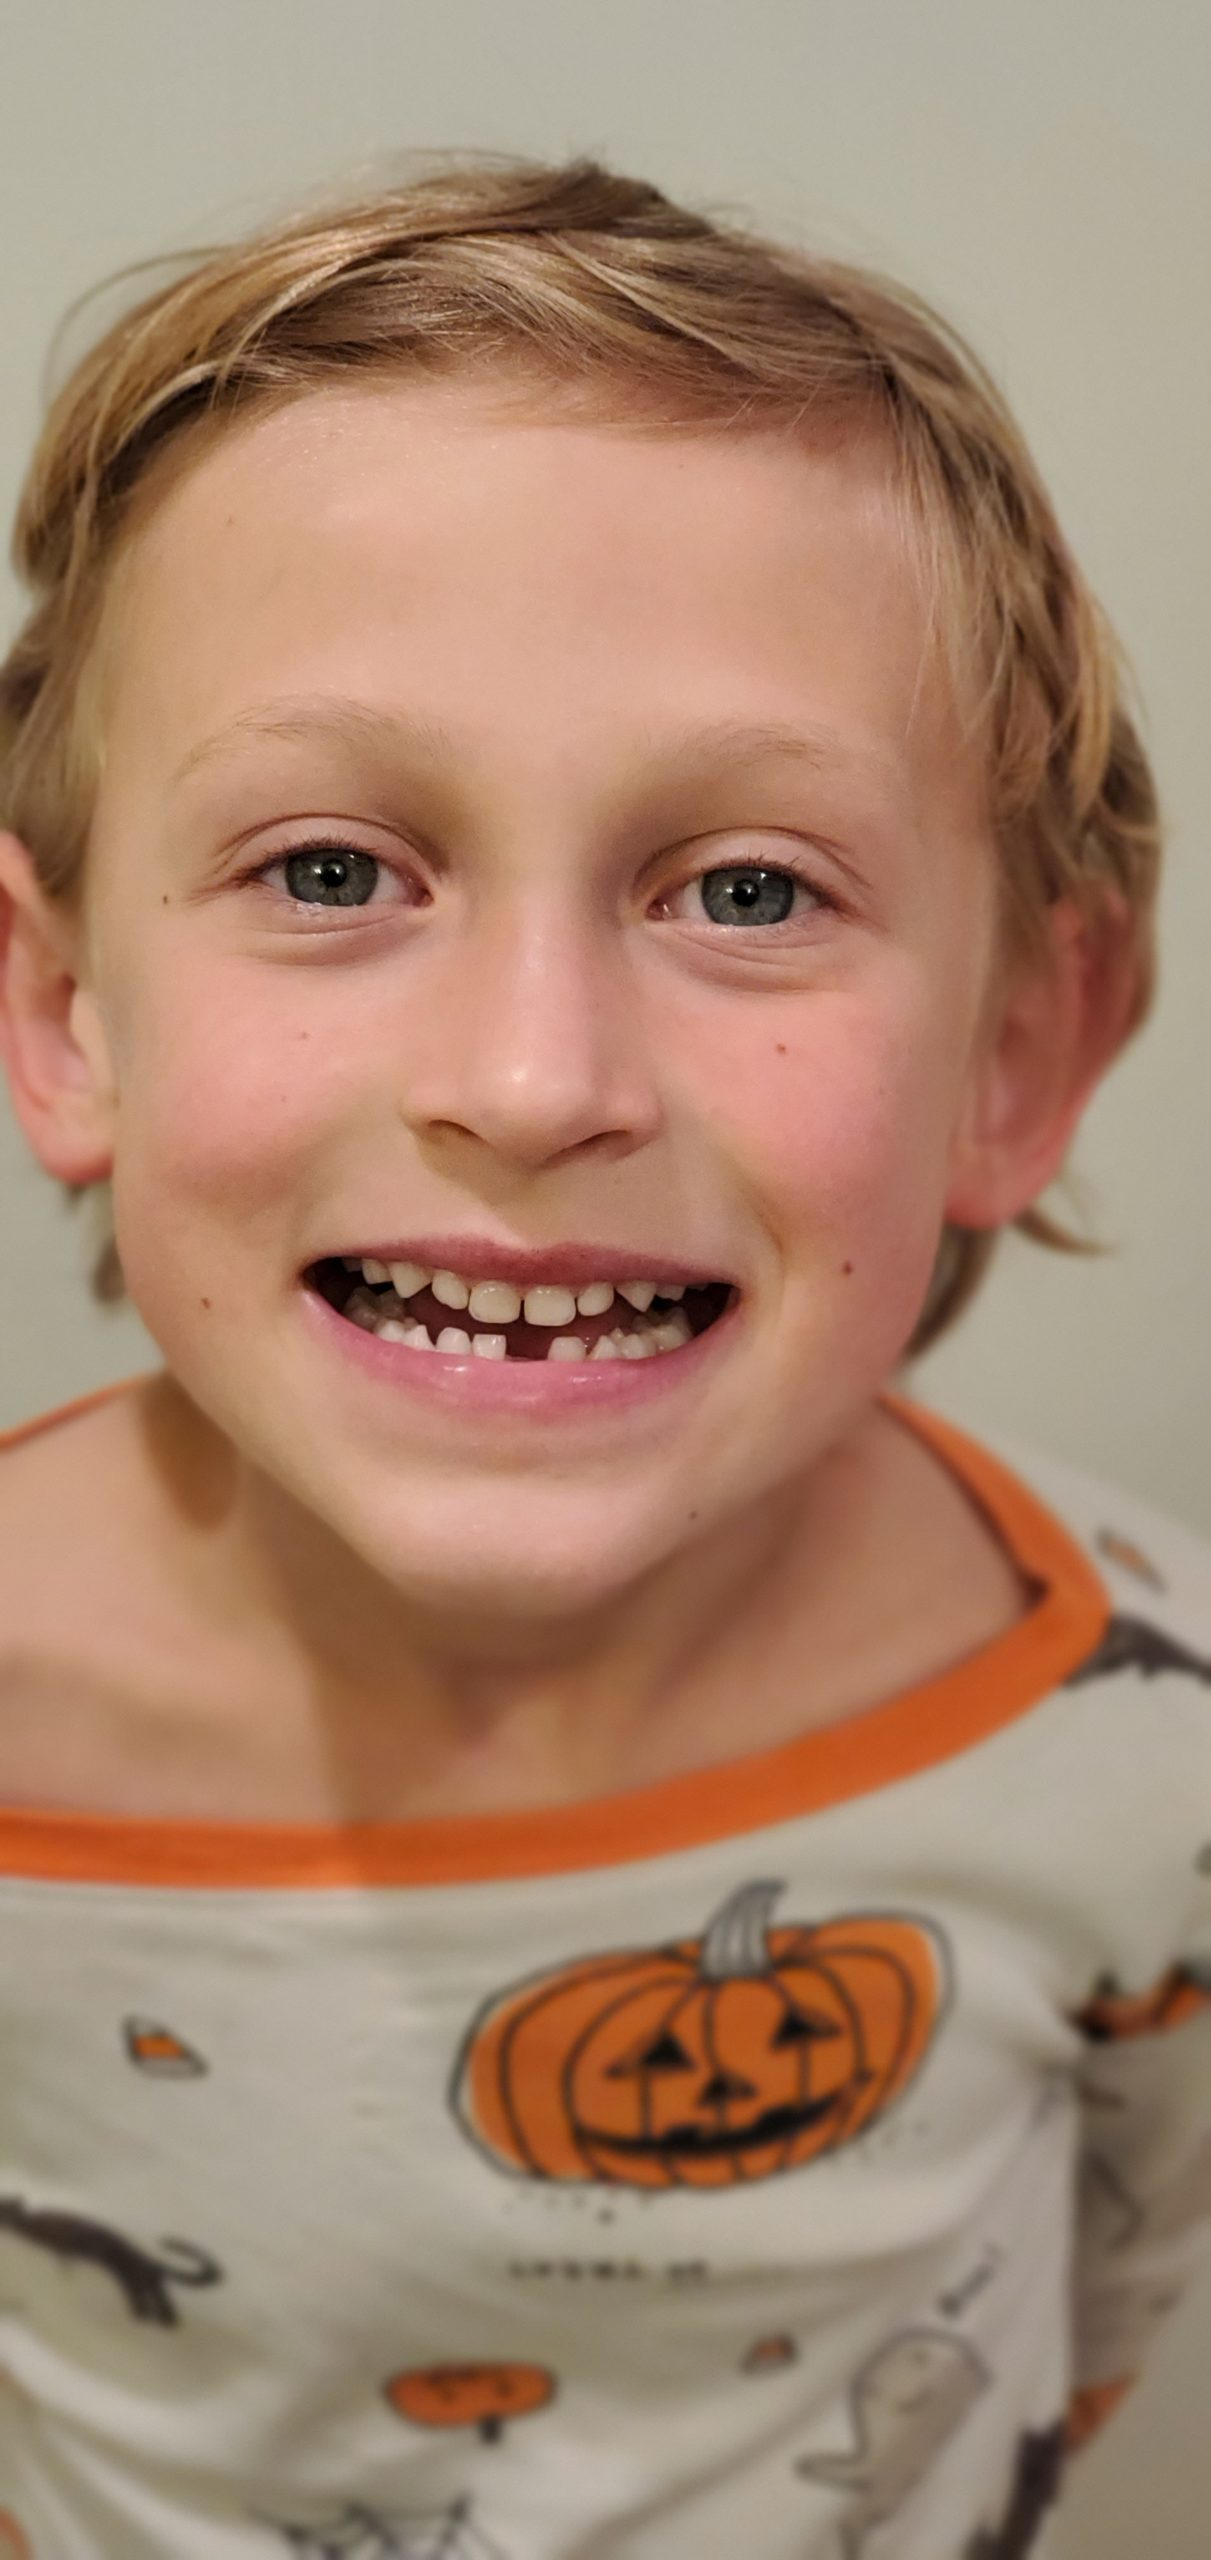 The Beginning of Toothless Grins